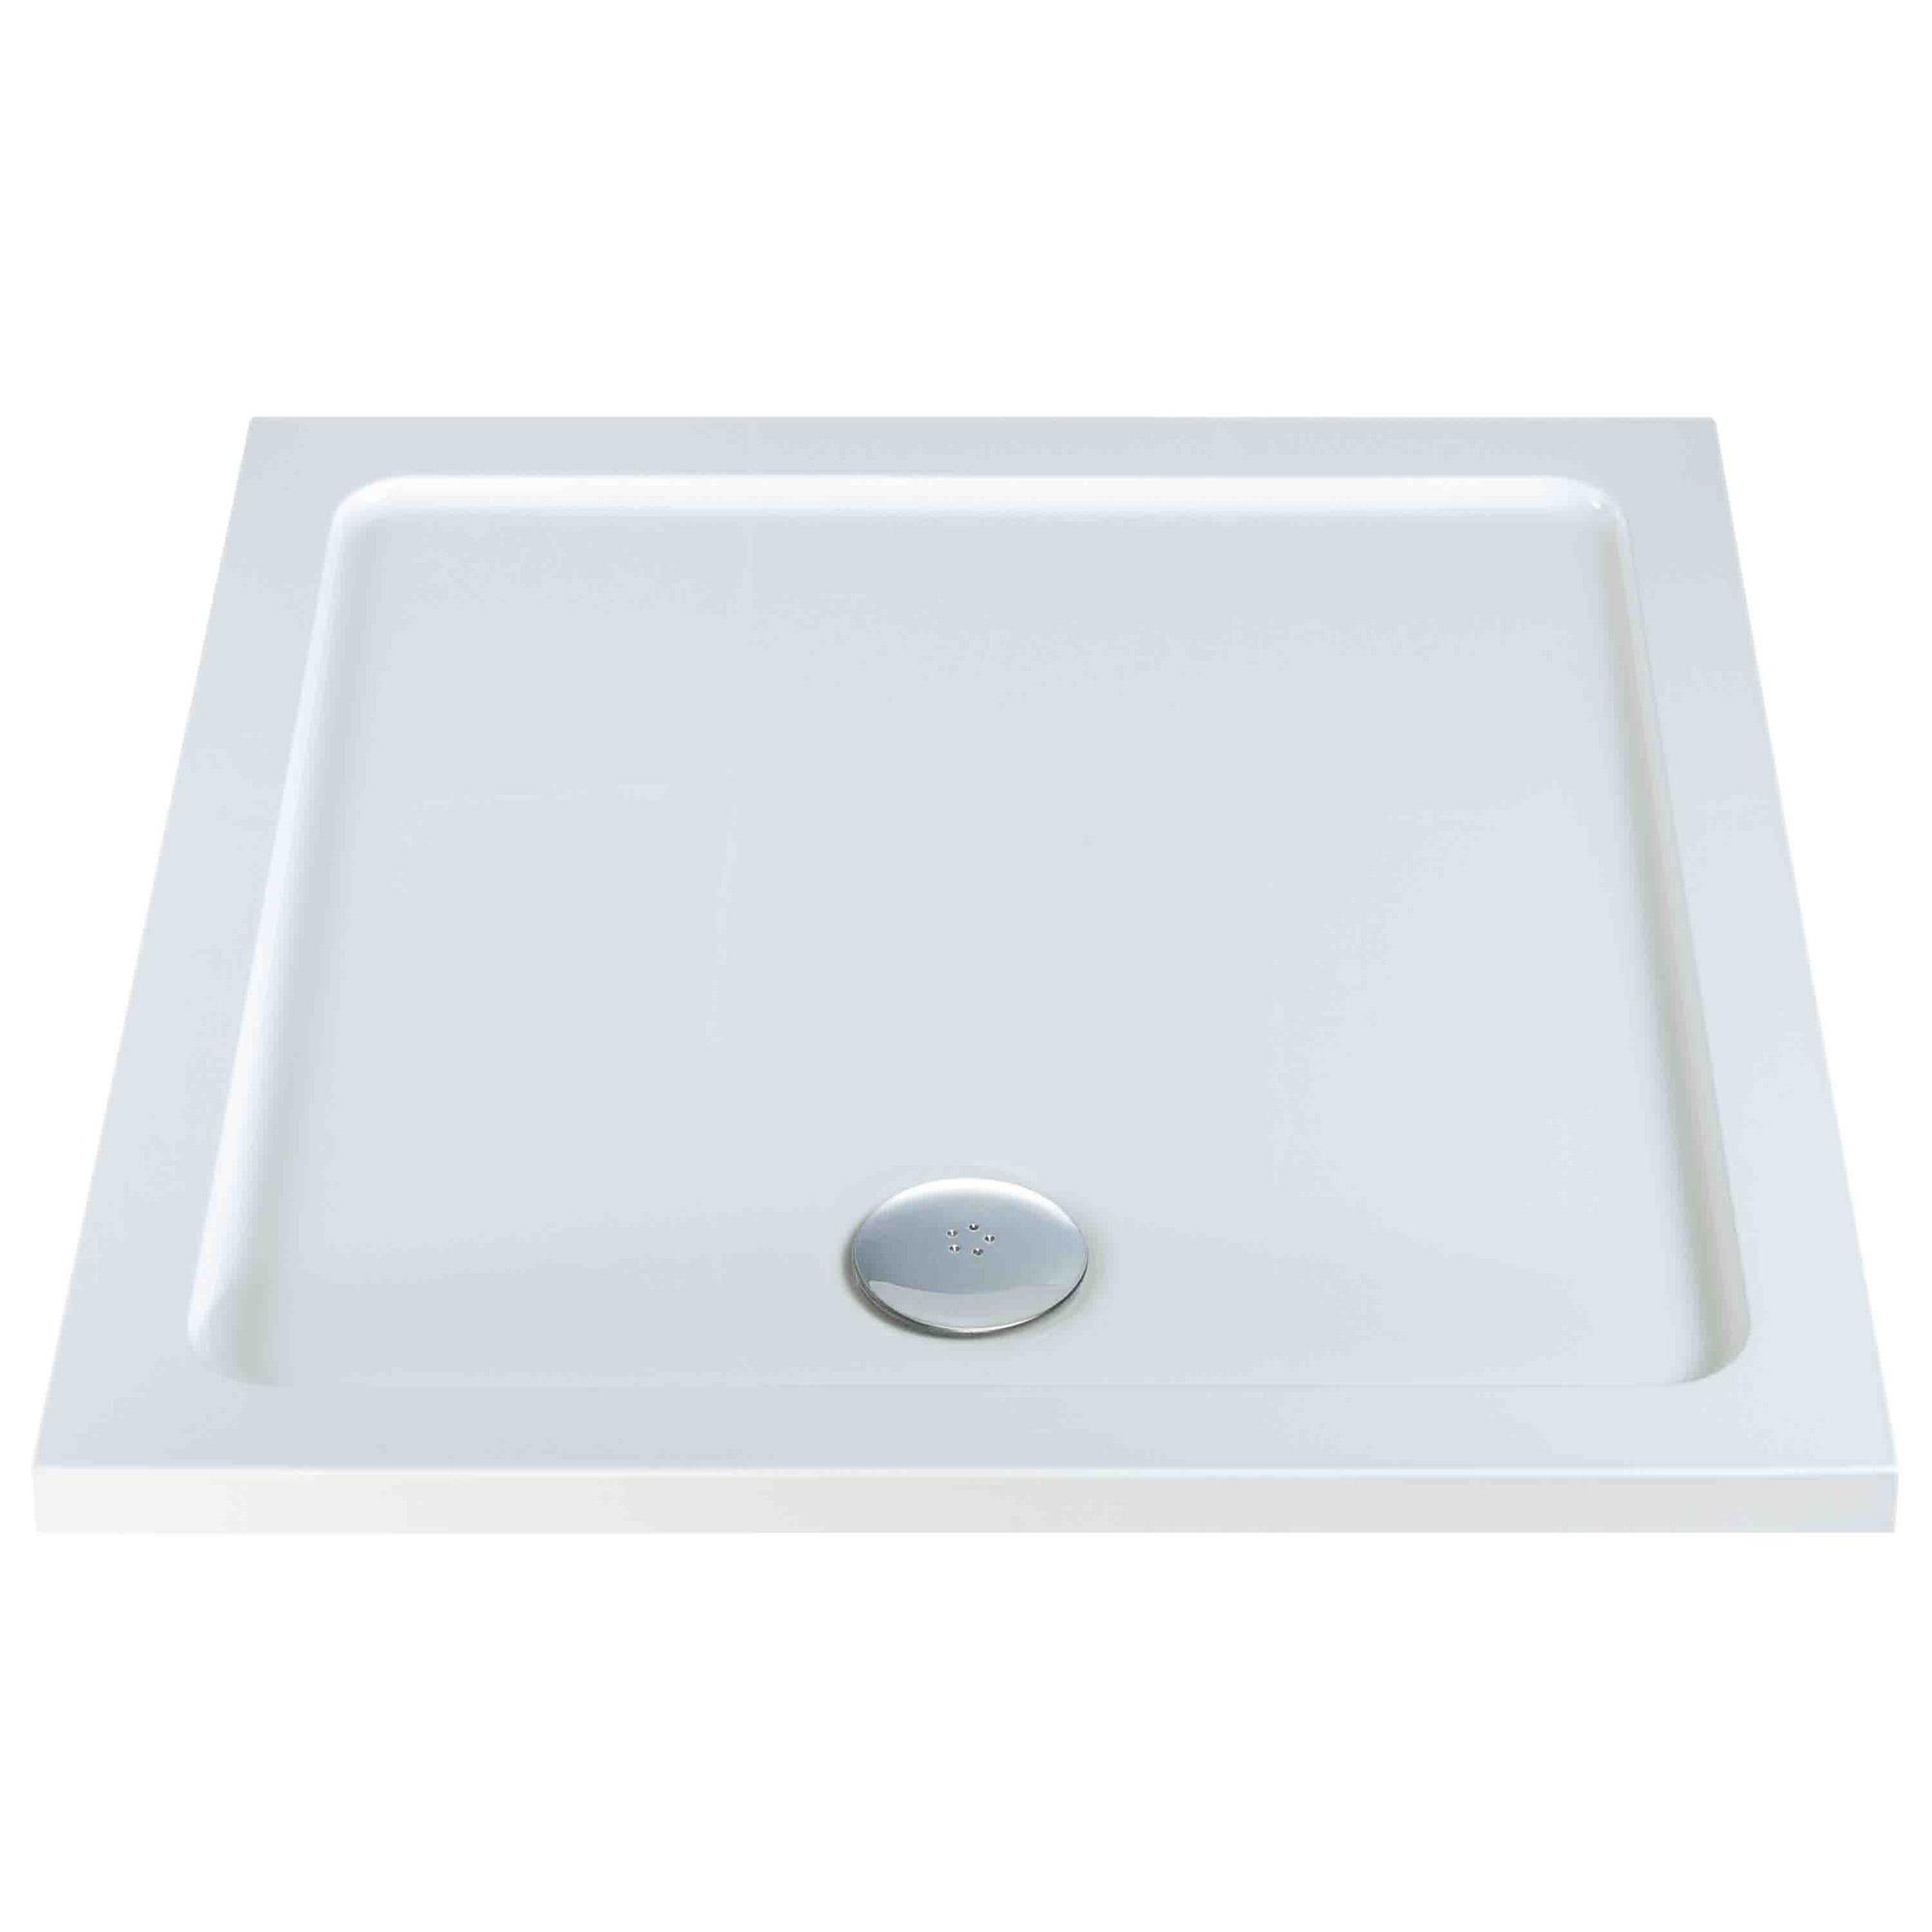 Fresssh Square Shower Trays with Waste - Heat & Things